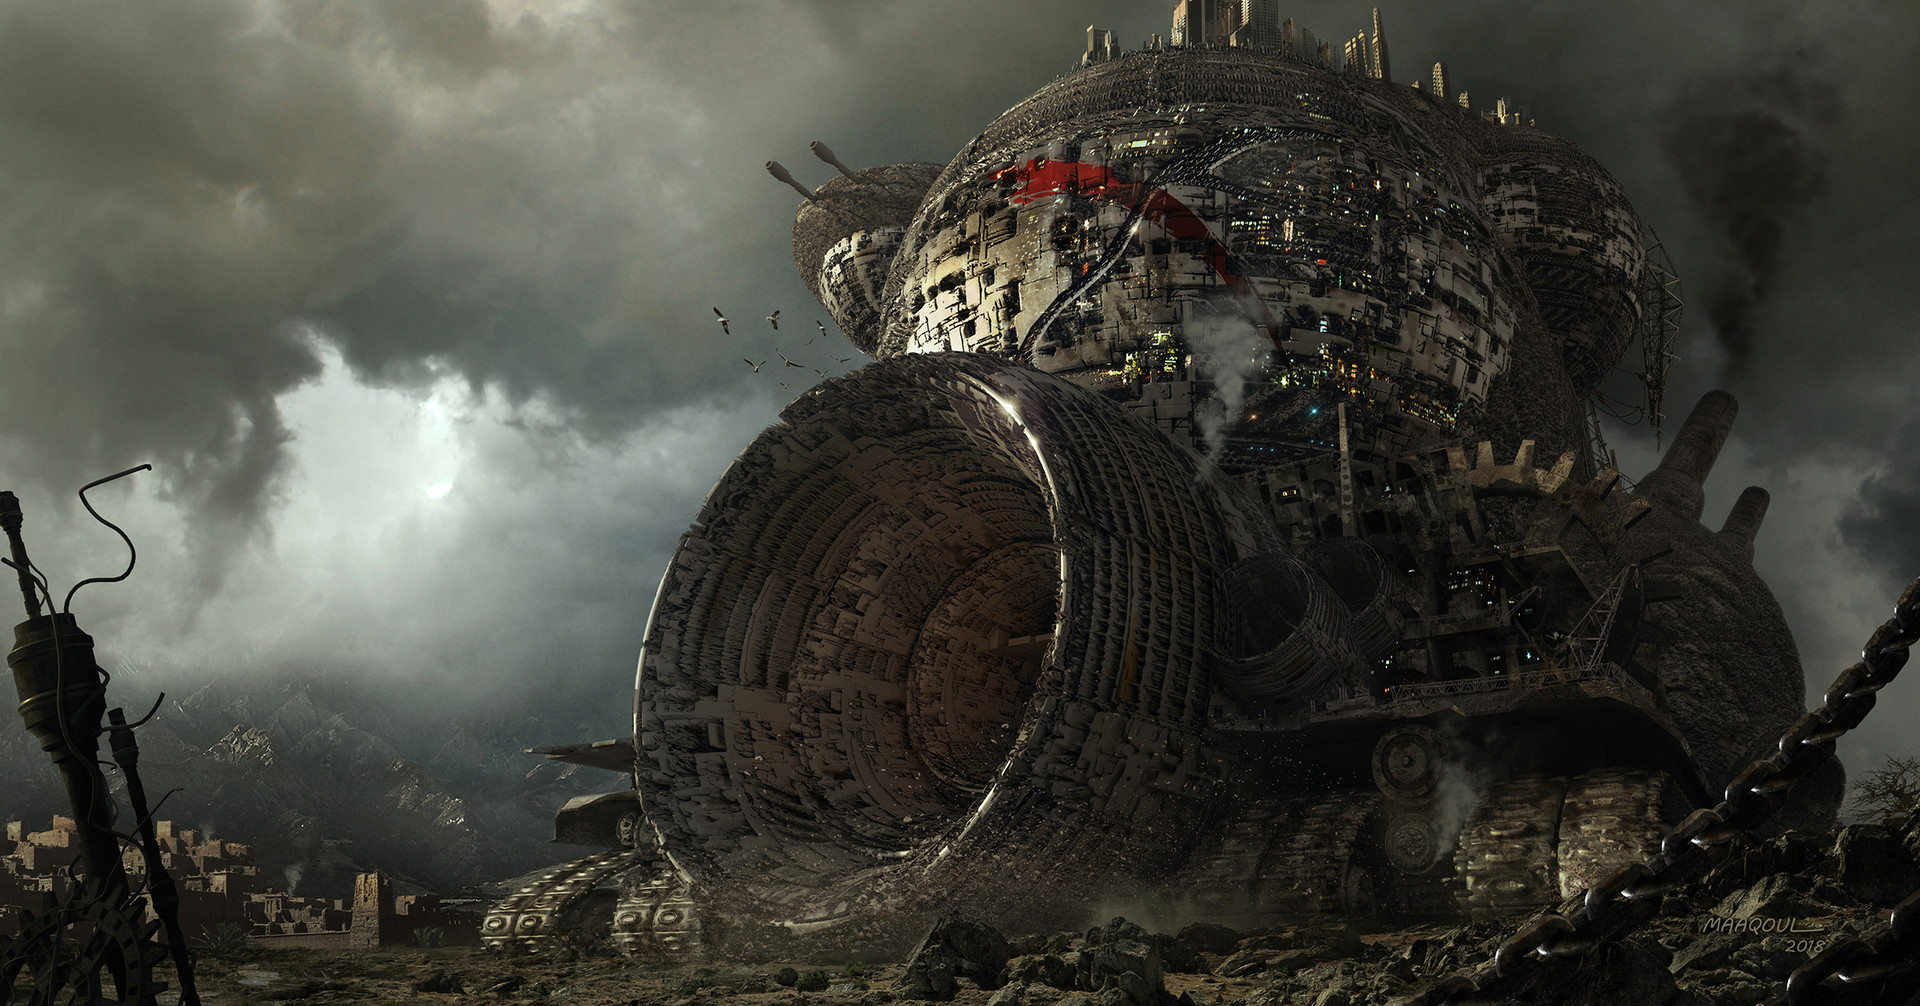 Iphone 4 Live Wallpaper Mortal Engines By Aziz Maaqoul Imaginarycastles